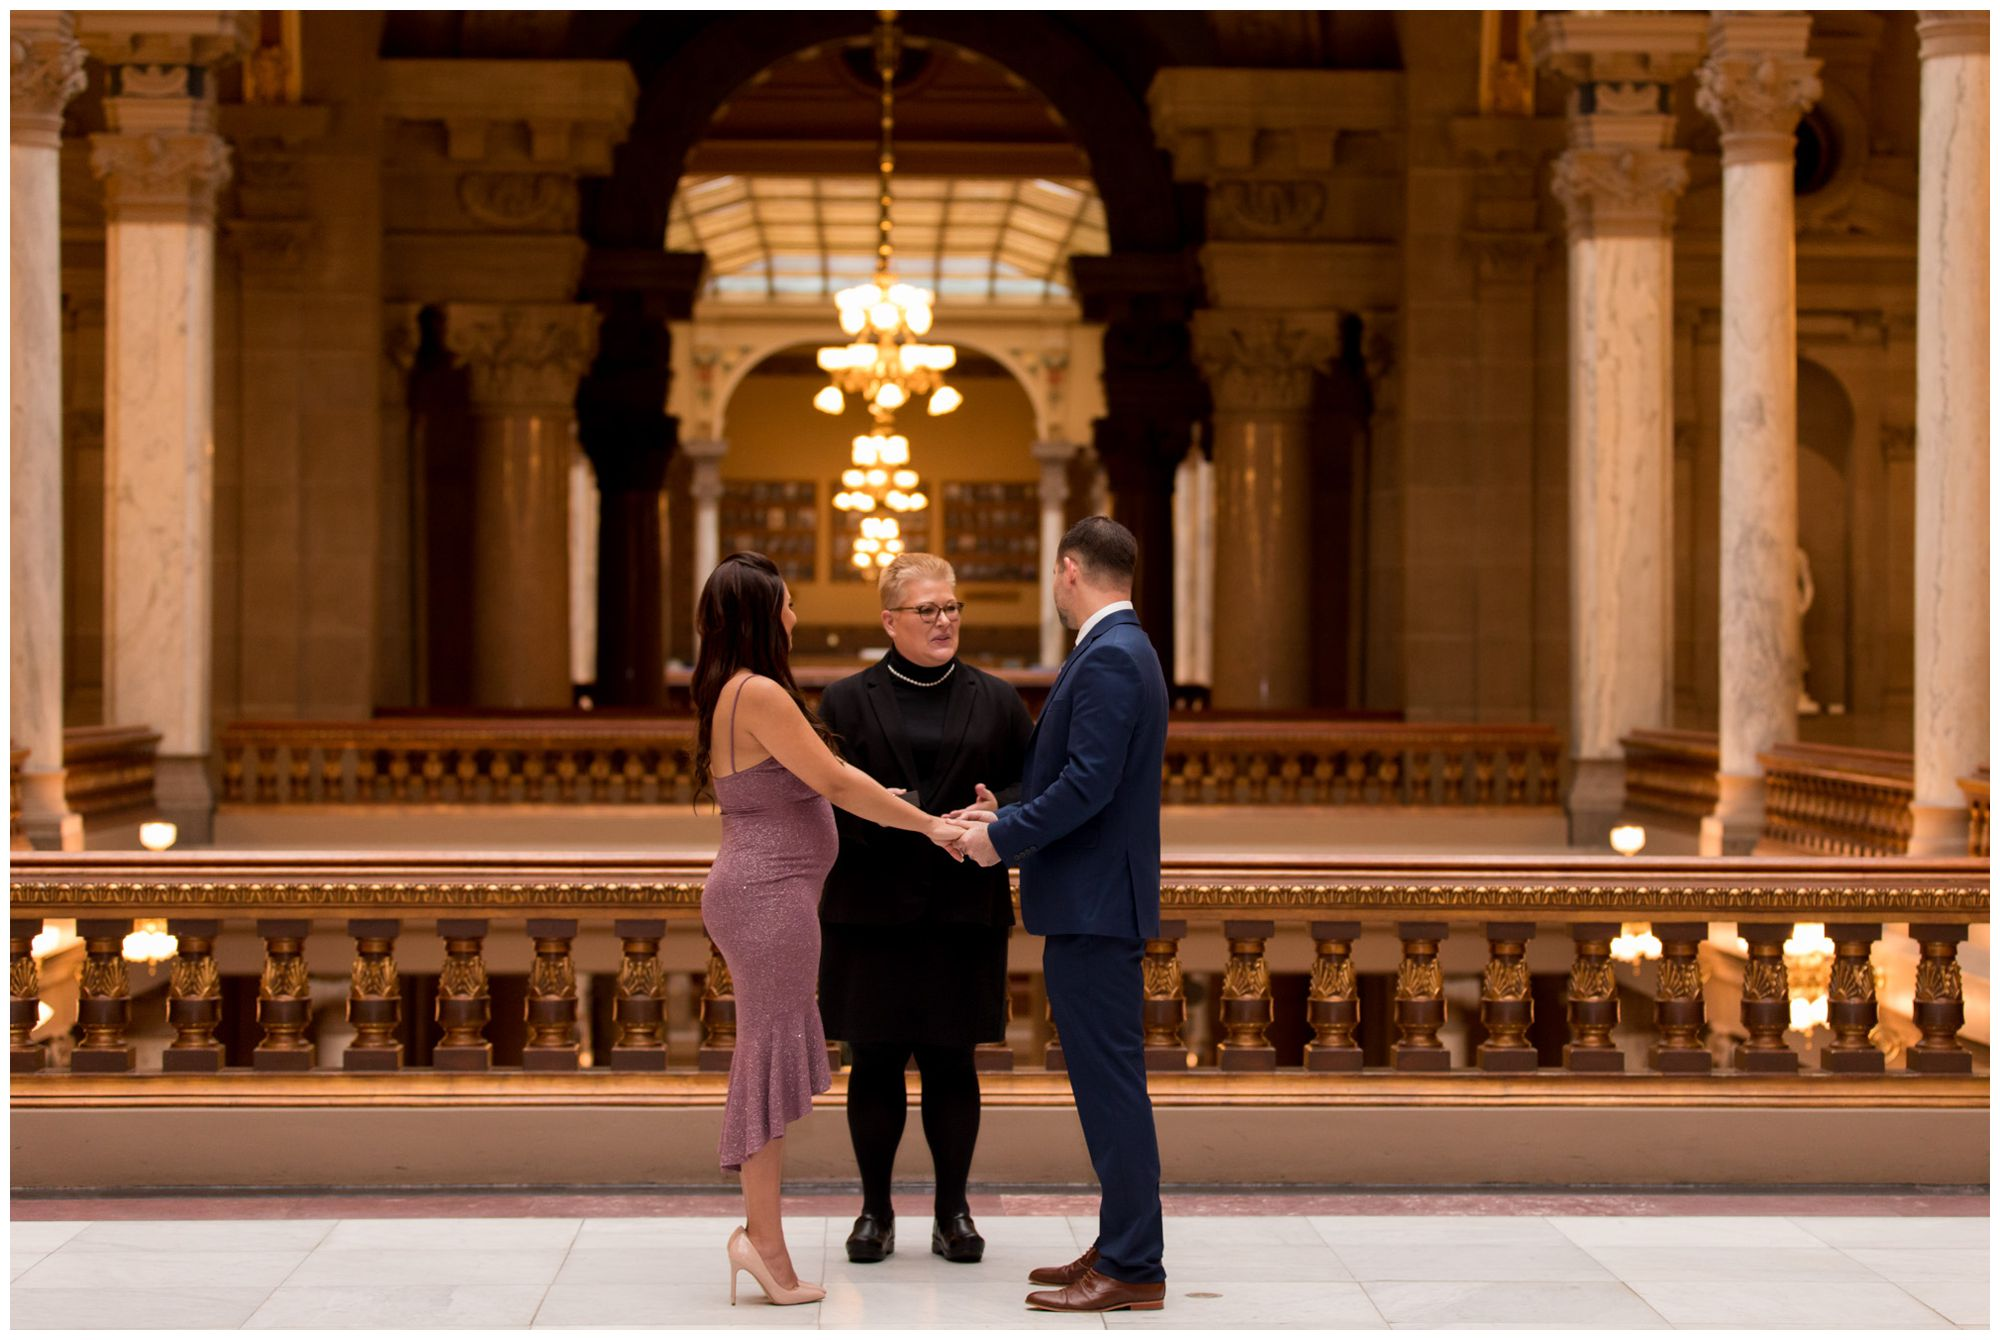 downtown Indianapolis elopement ceremony at Indiana Statehouse